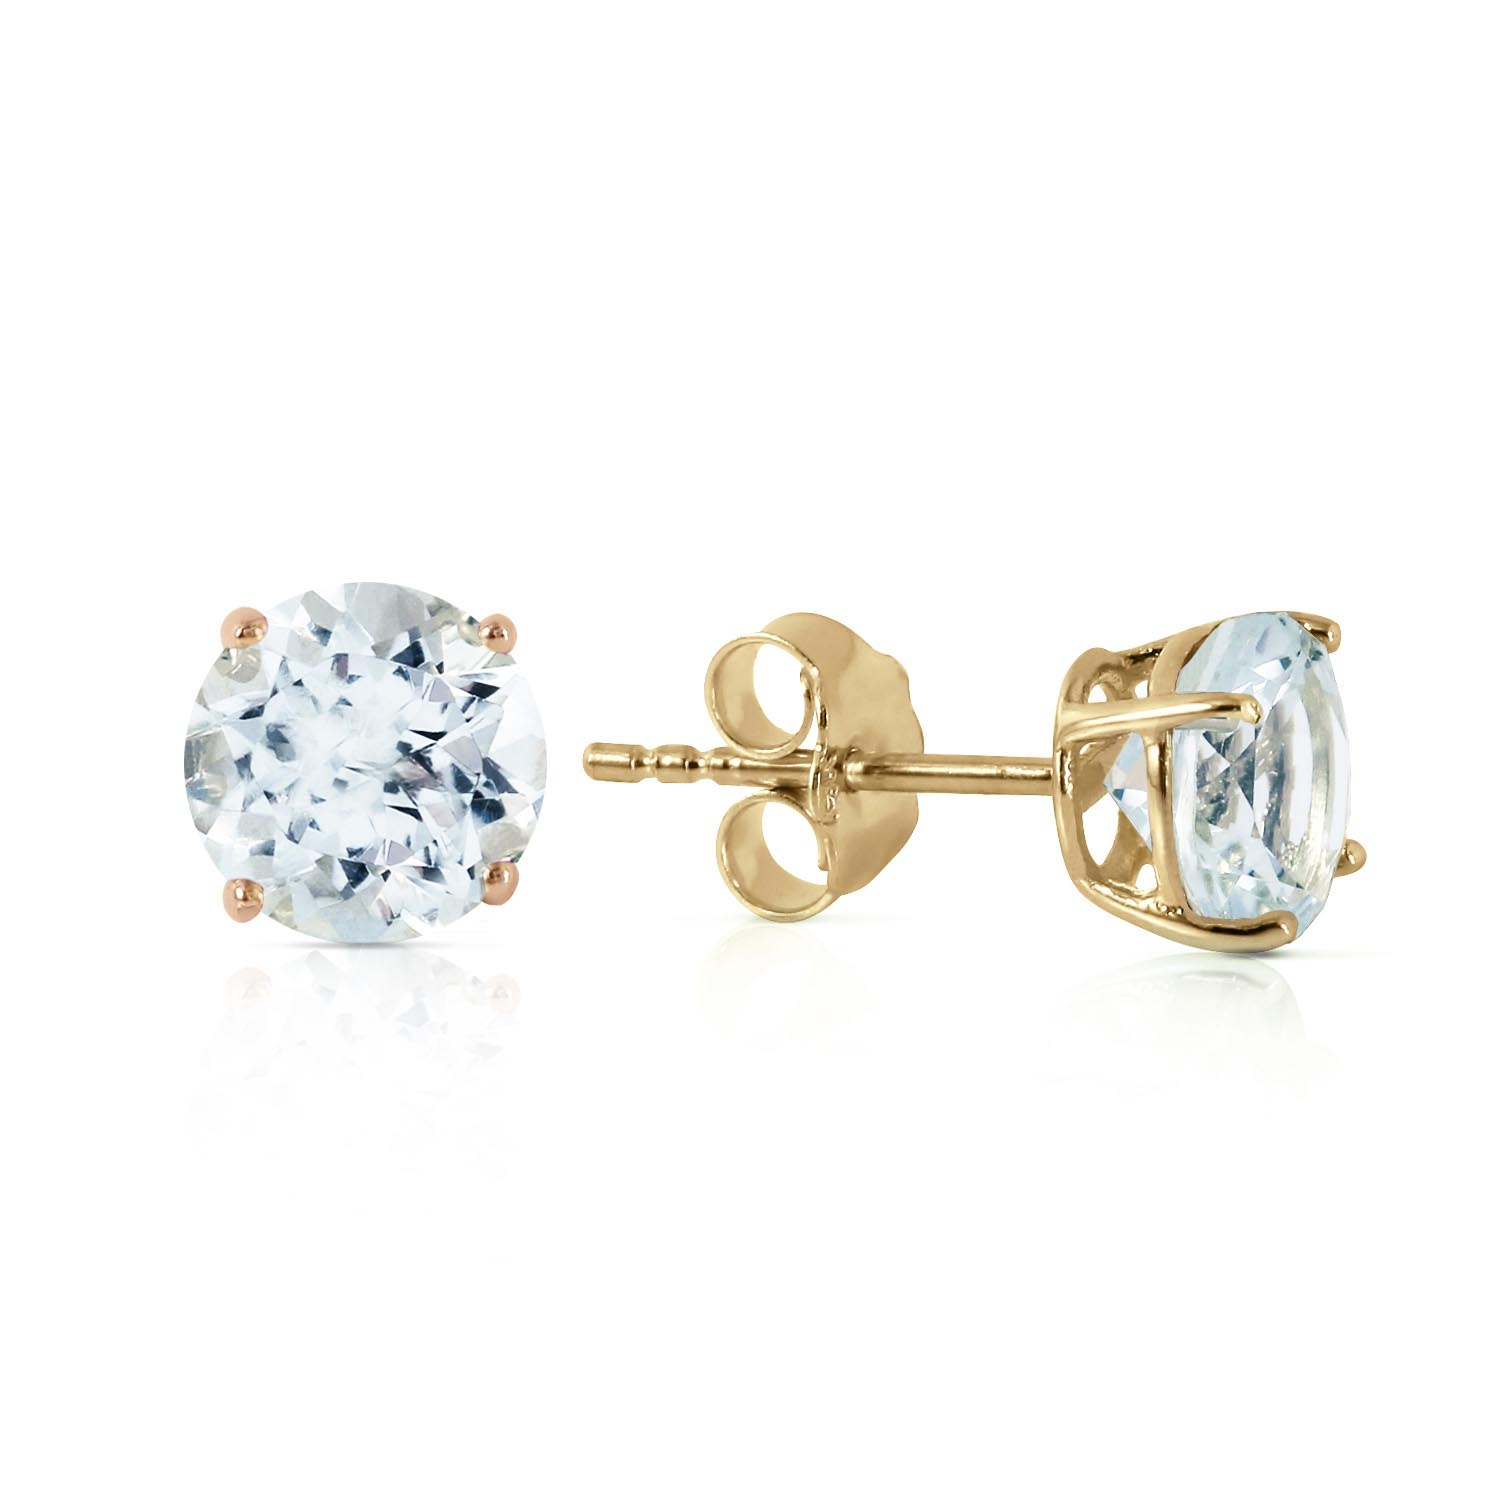 Aquamarine Stud Earrings 0.95ctw in 9ct Gold